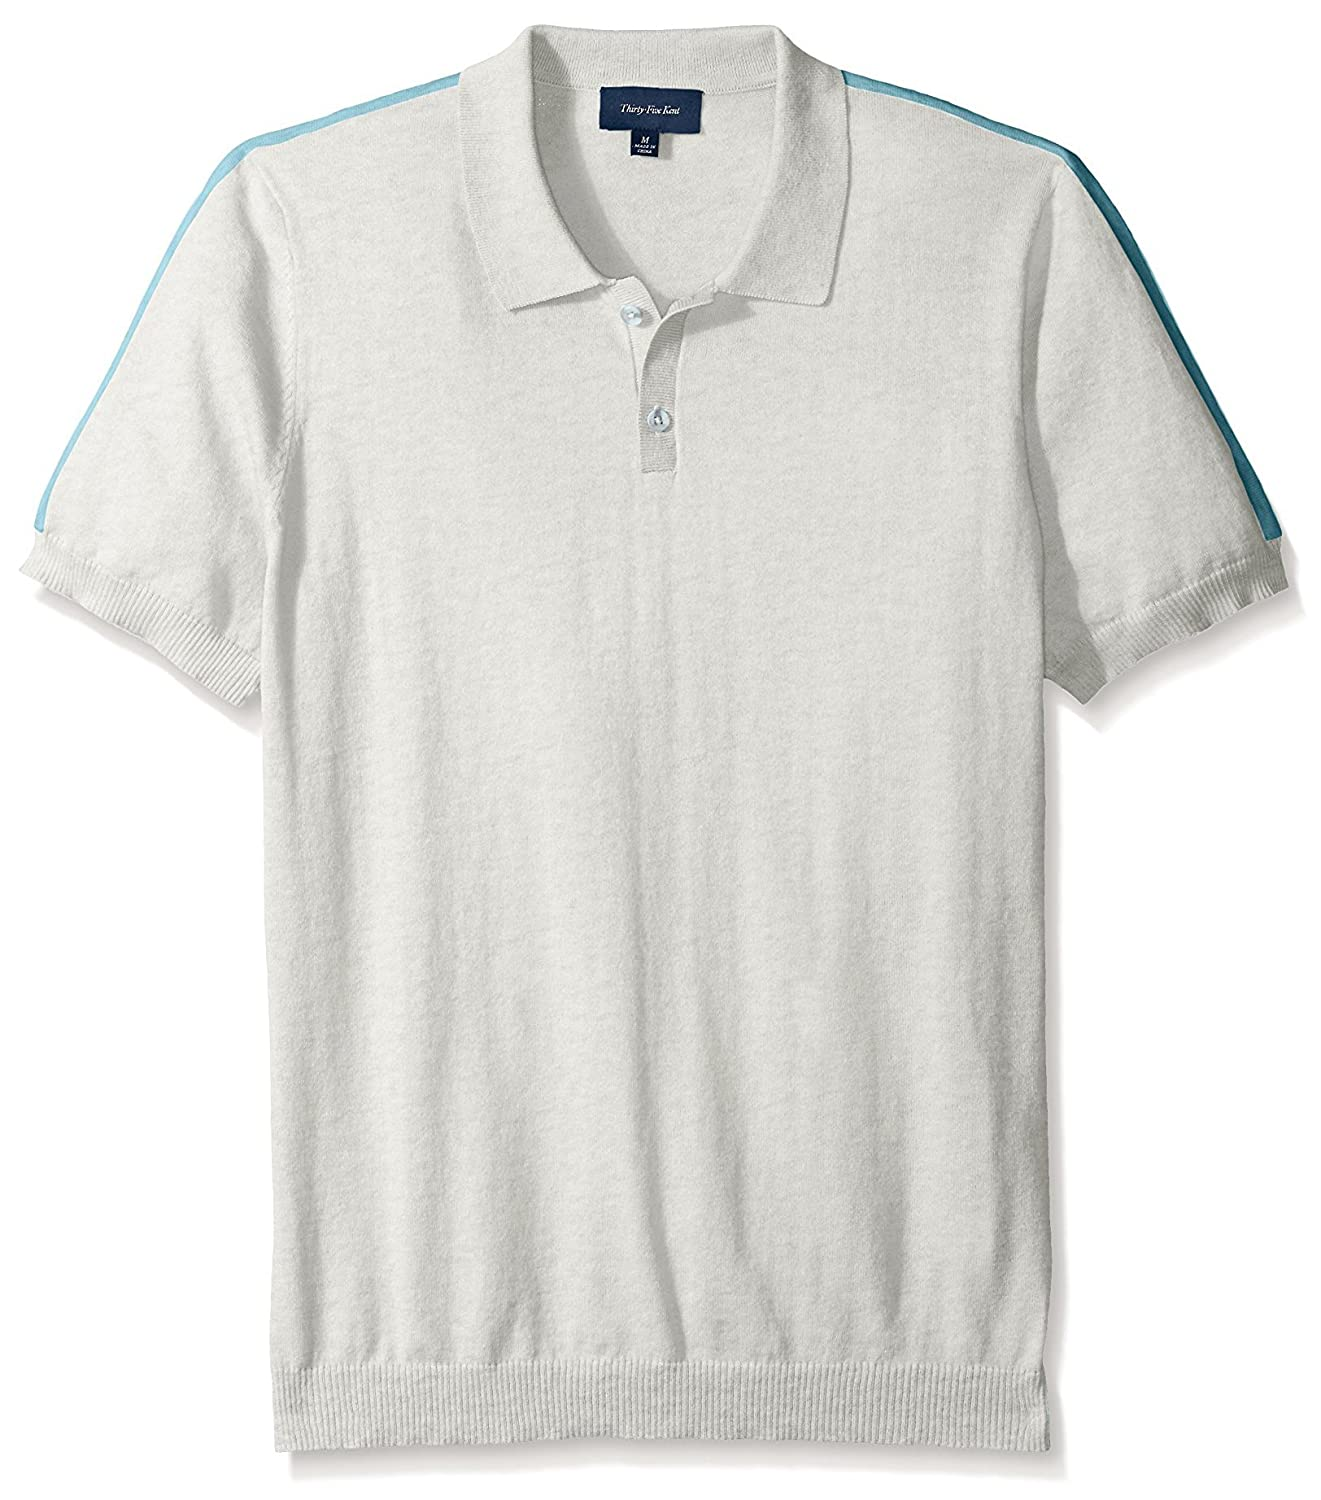 Retro Clothing for Men | Vintage Men's Fashion Thirty Five Kent Mens Brushed Cotton Short Sleeve Polo $44.00 AT vintagedancer.com